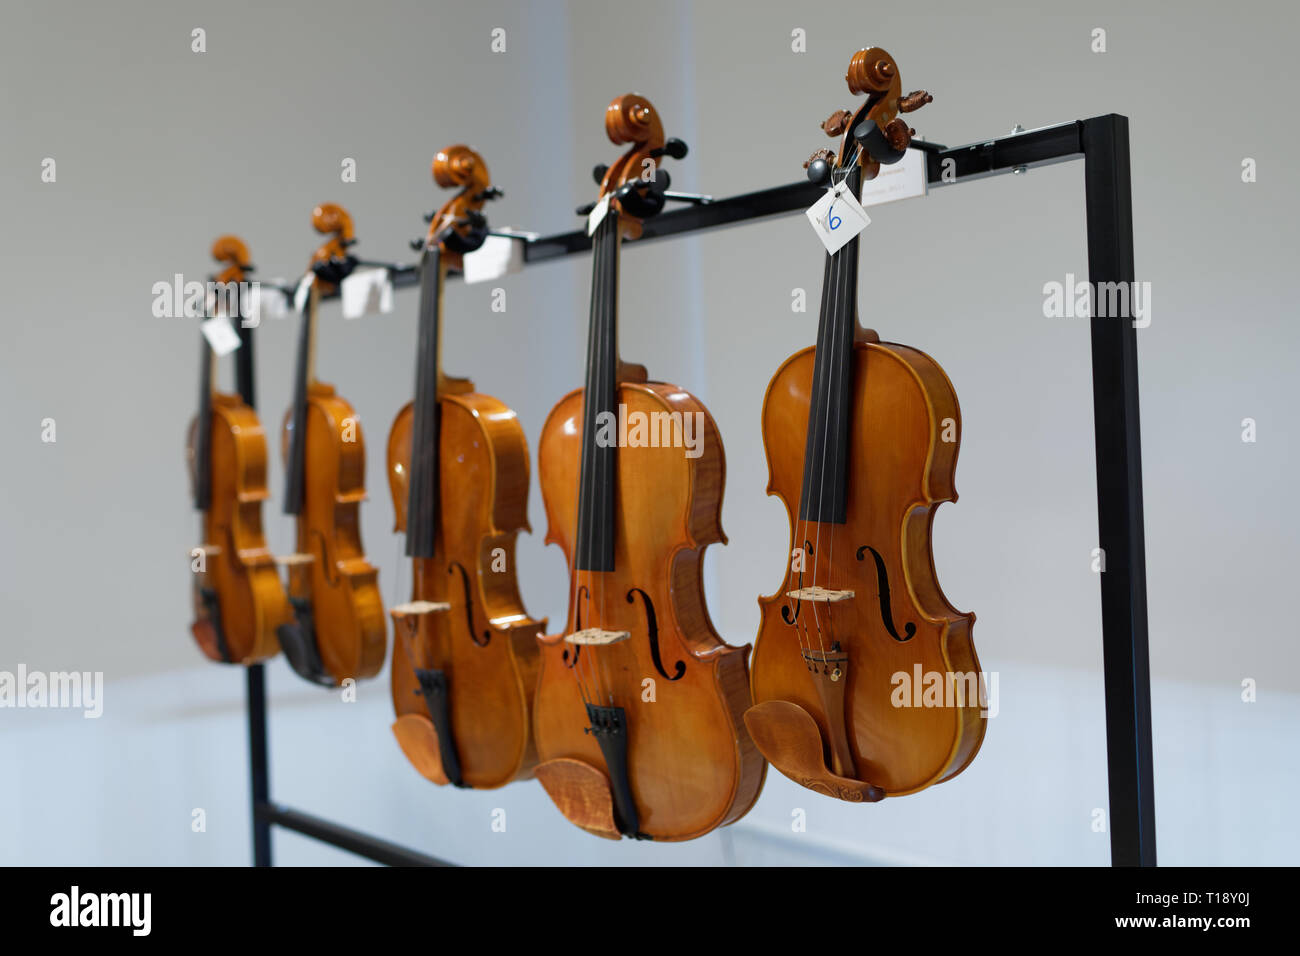 Musical Instruments Violins Stock Photos & Musical